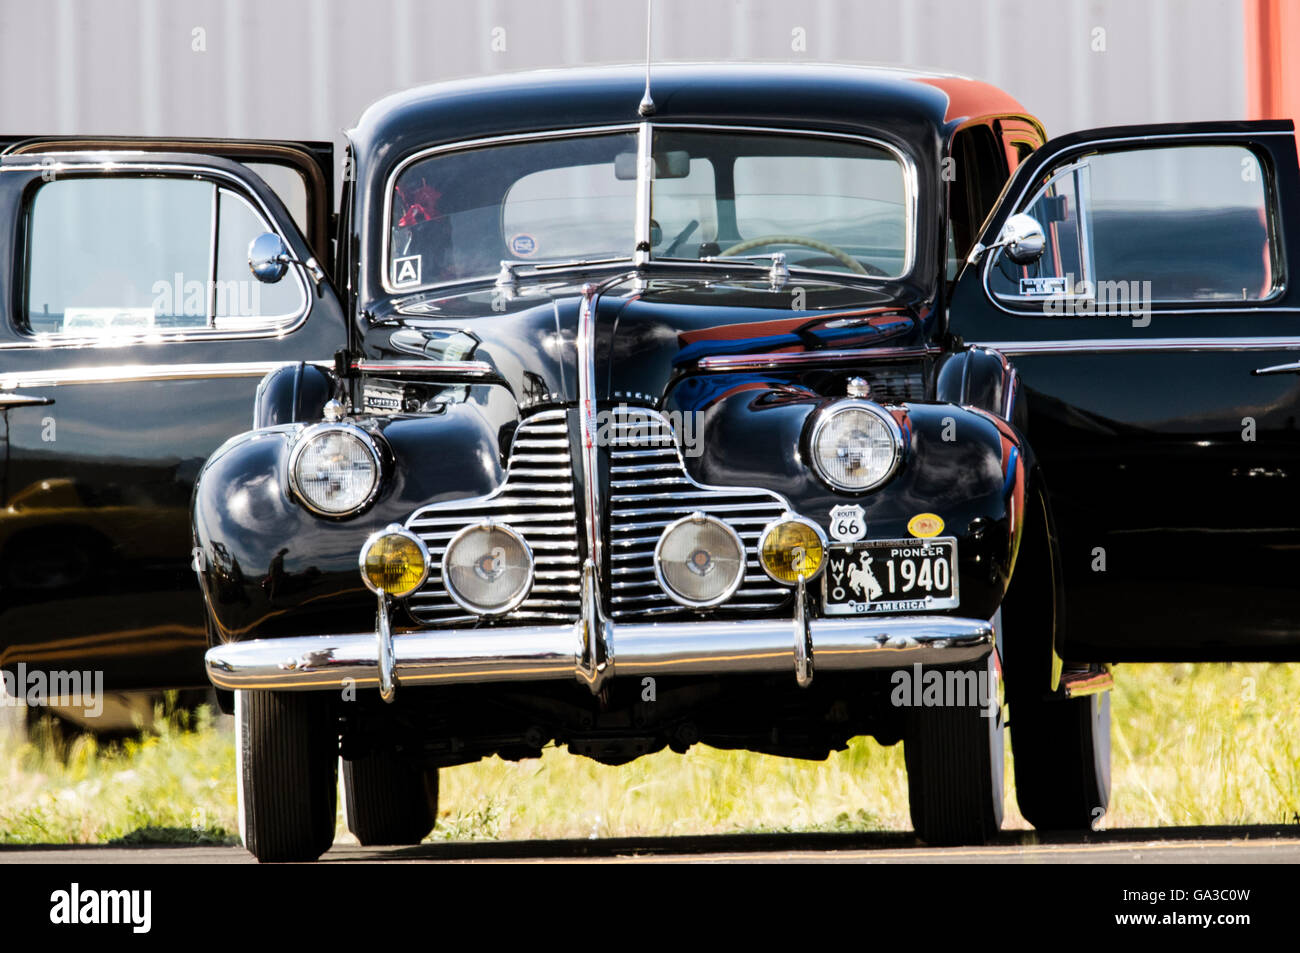 Antique 1940 Buick automobile at Salida Art Walk Fly-in event; central Colorado; USA - Stock Image